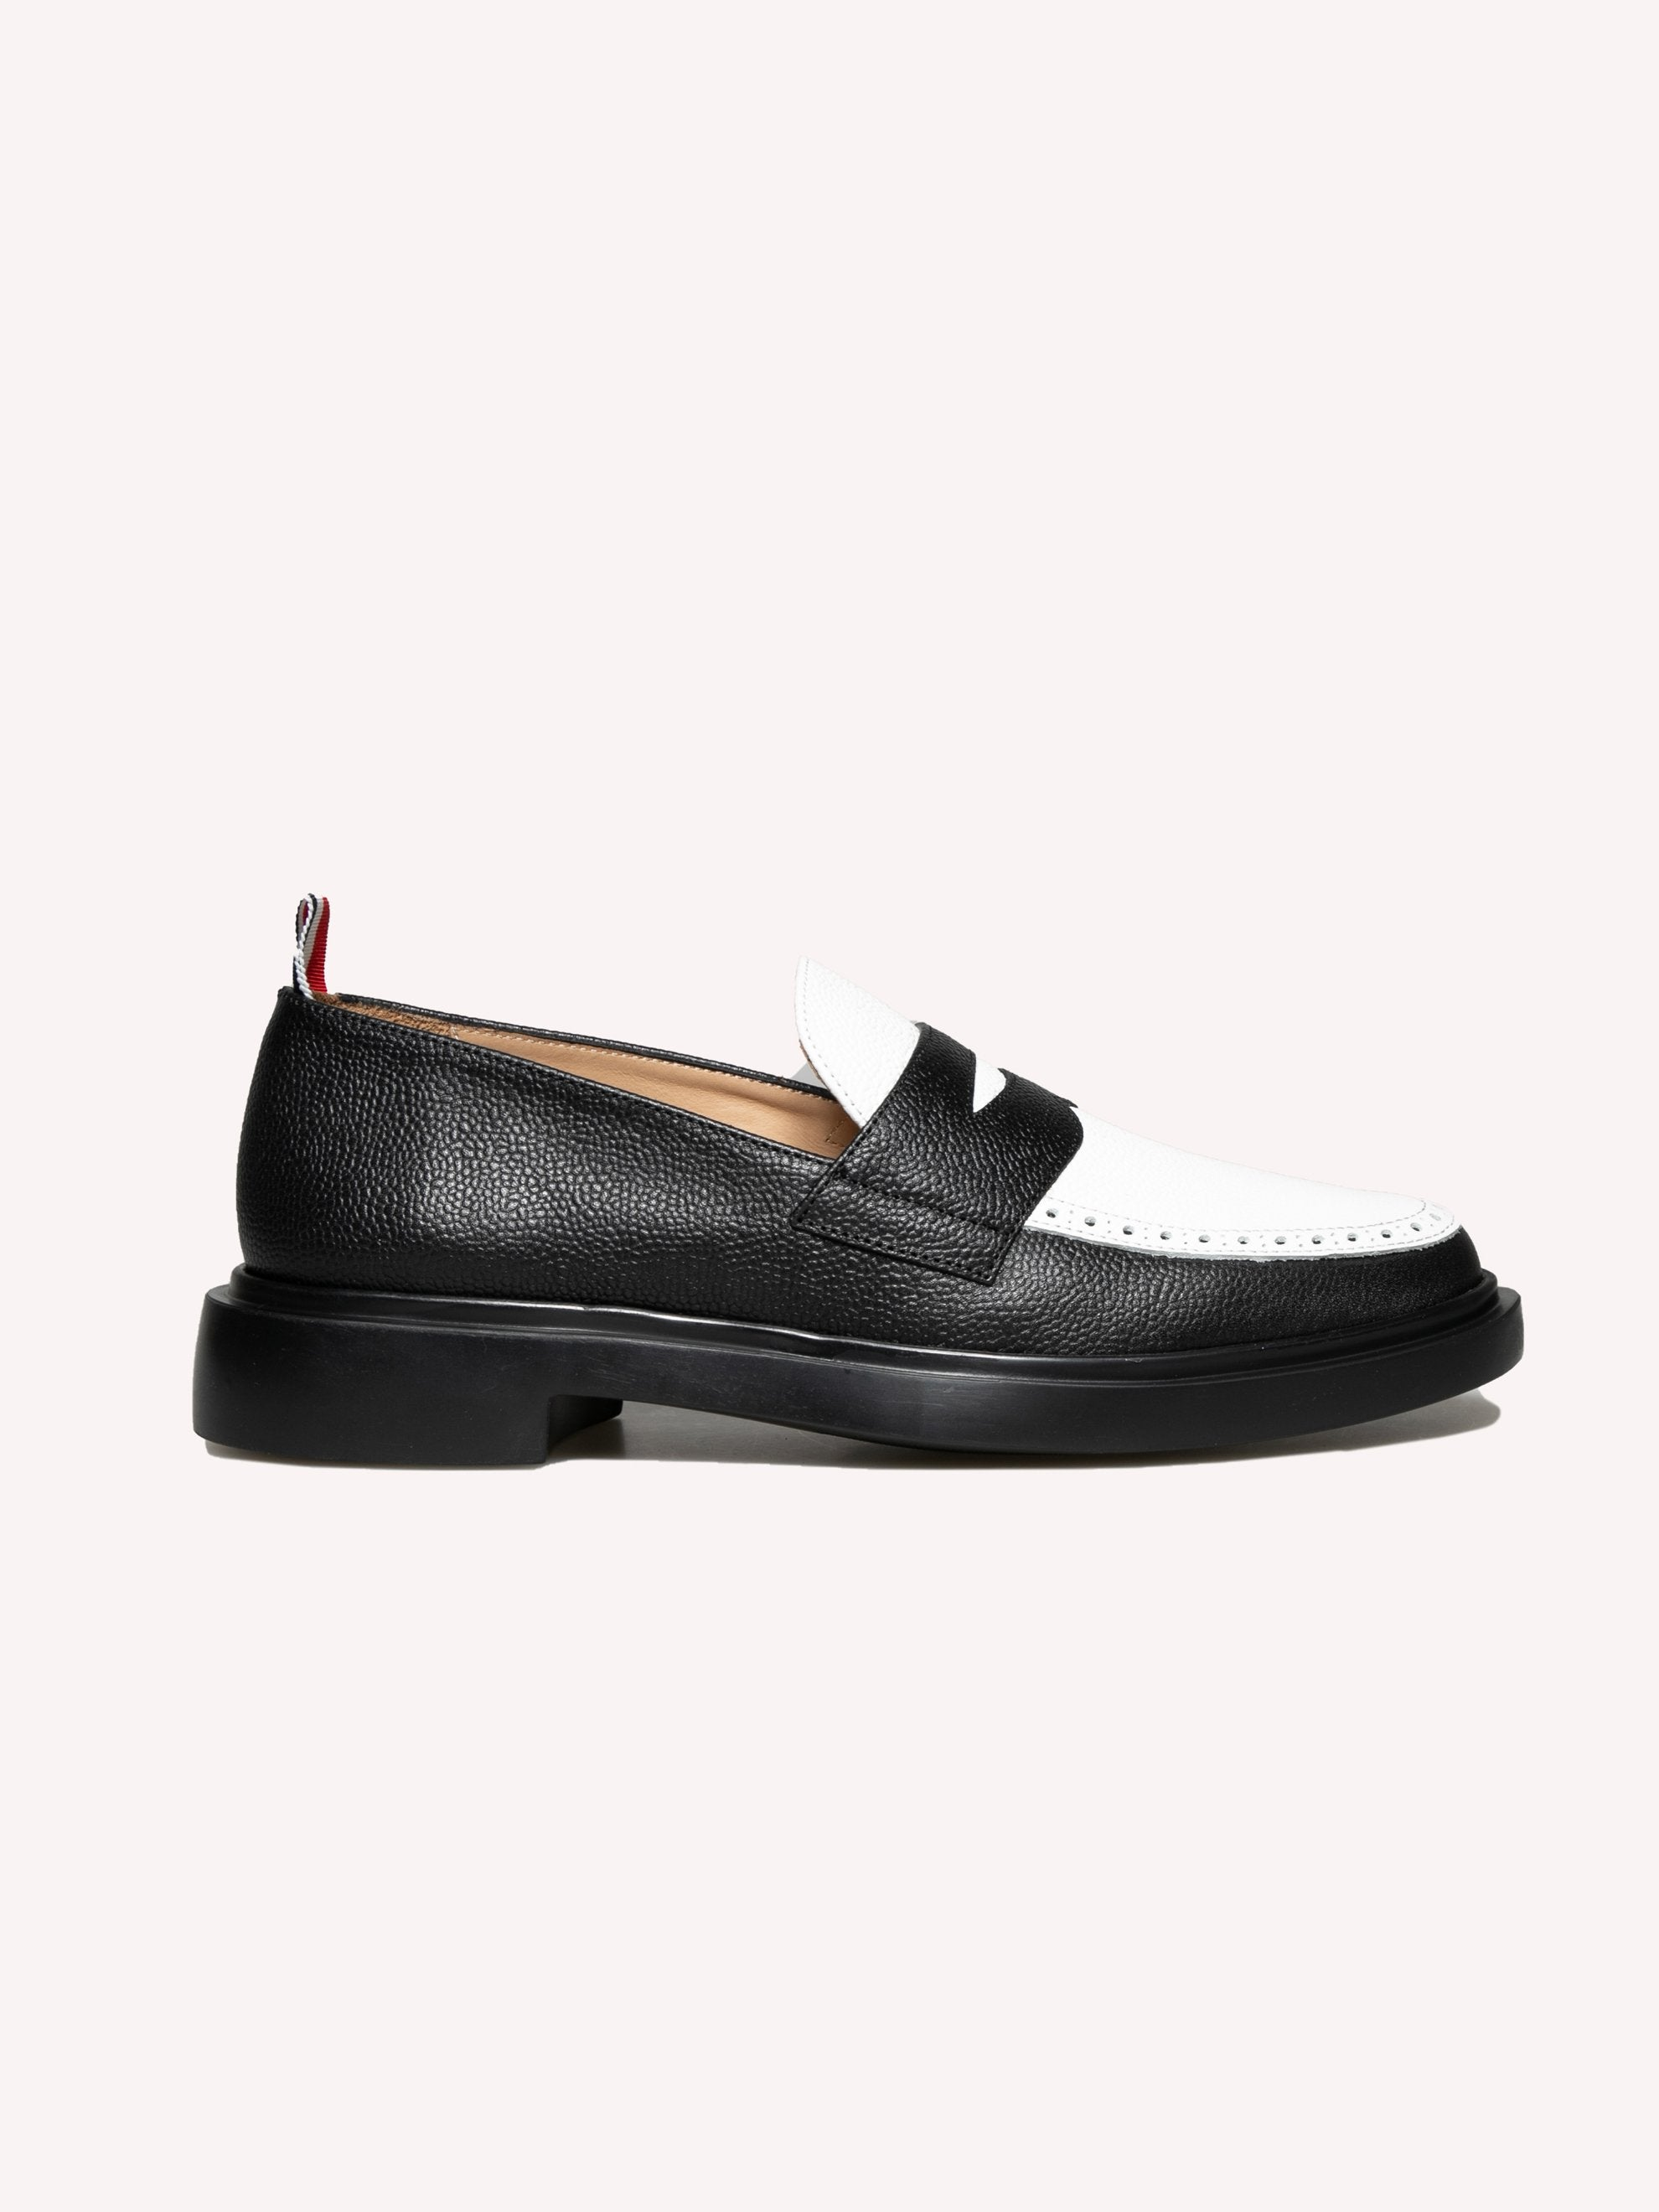 Penny Loafer W/ Lightweight Rubber Sole In Pebble Grain Leather